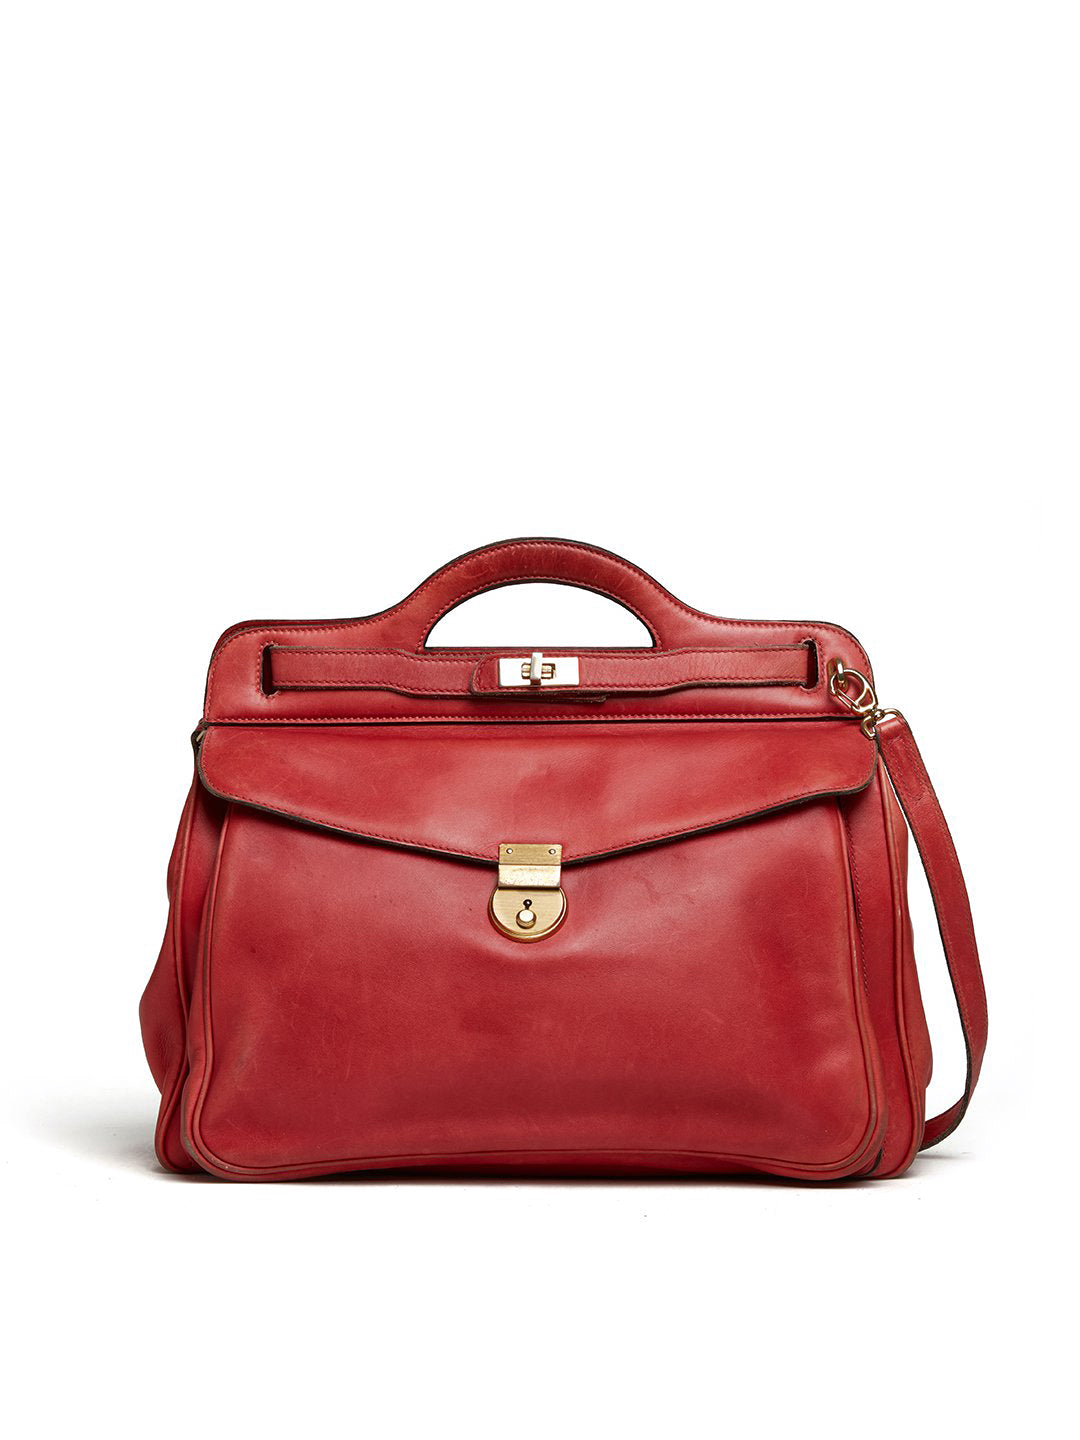 Archive Leather Crossbody Bag